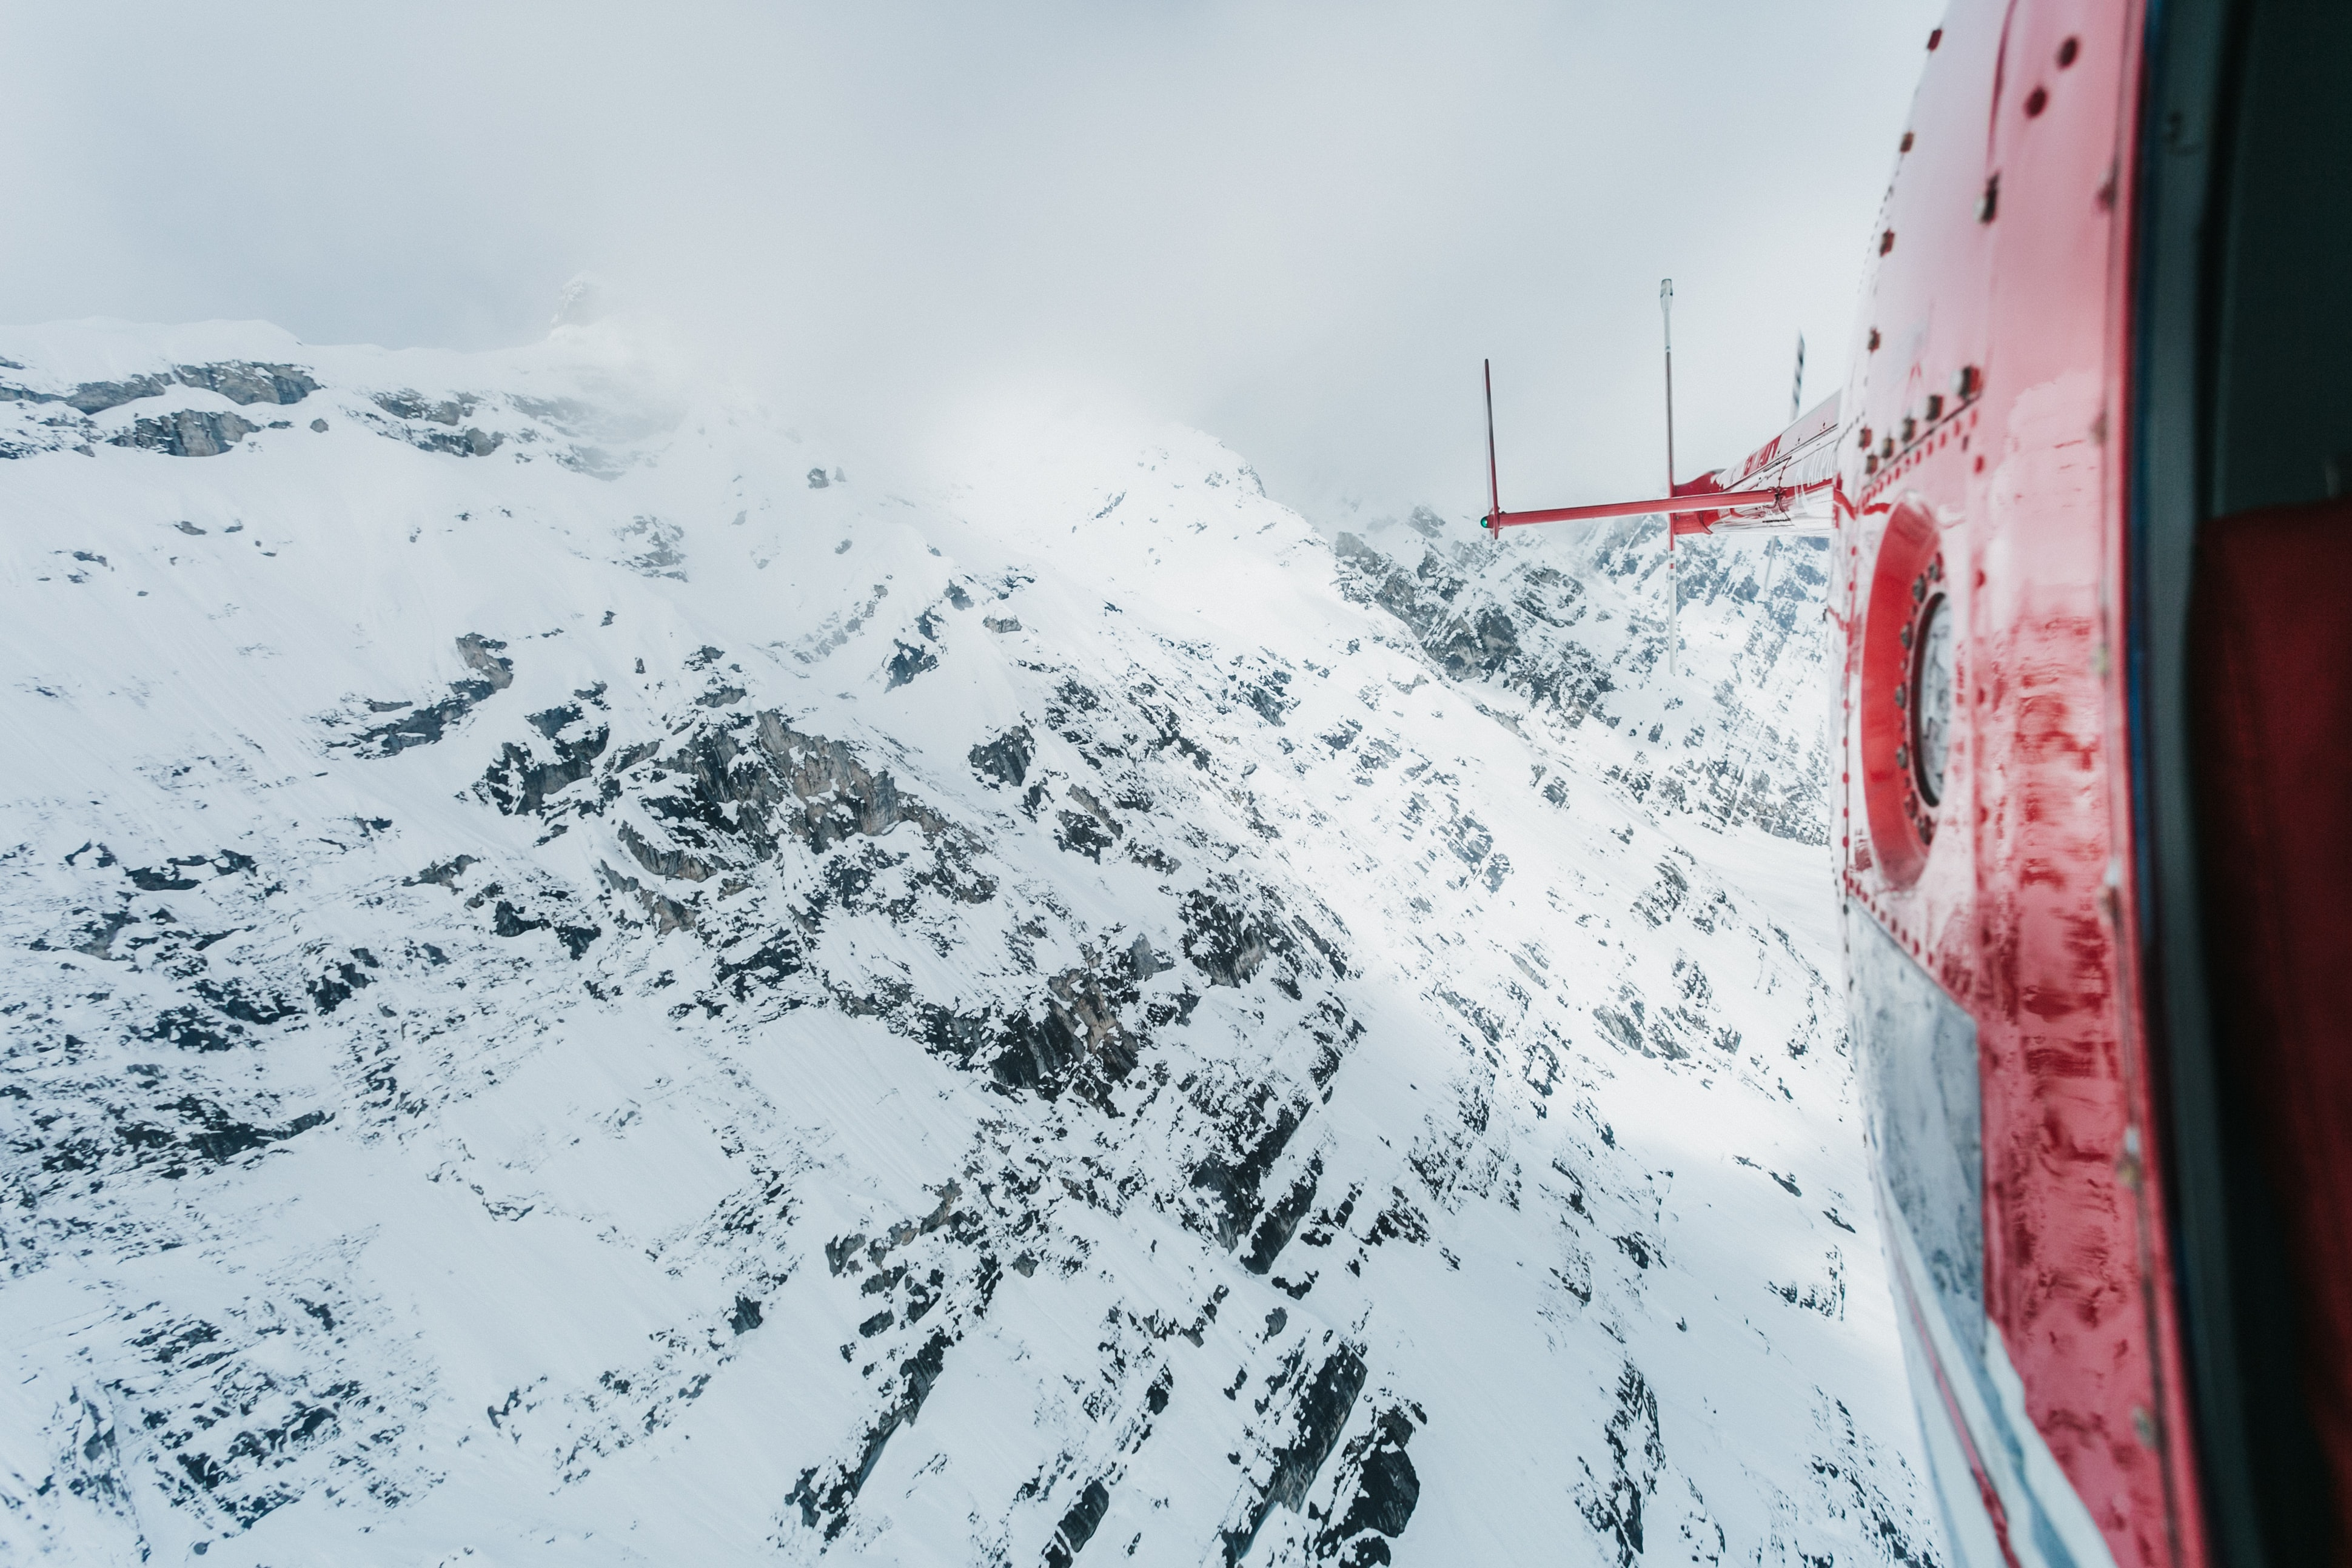 The snowy side of a mountain seen from a helicopter